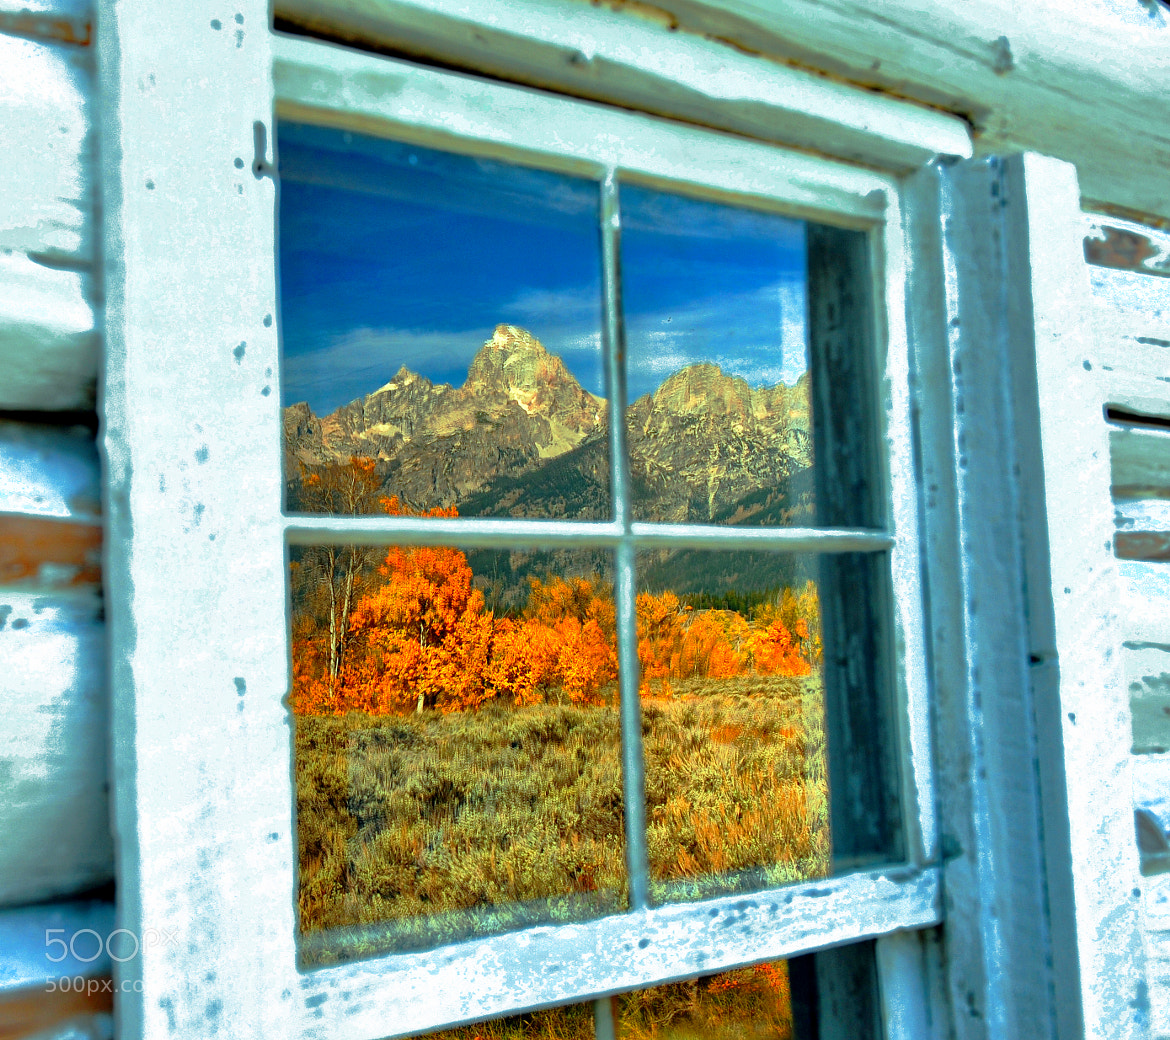 Photograph Autumn Window by Jeff Clow on 500px